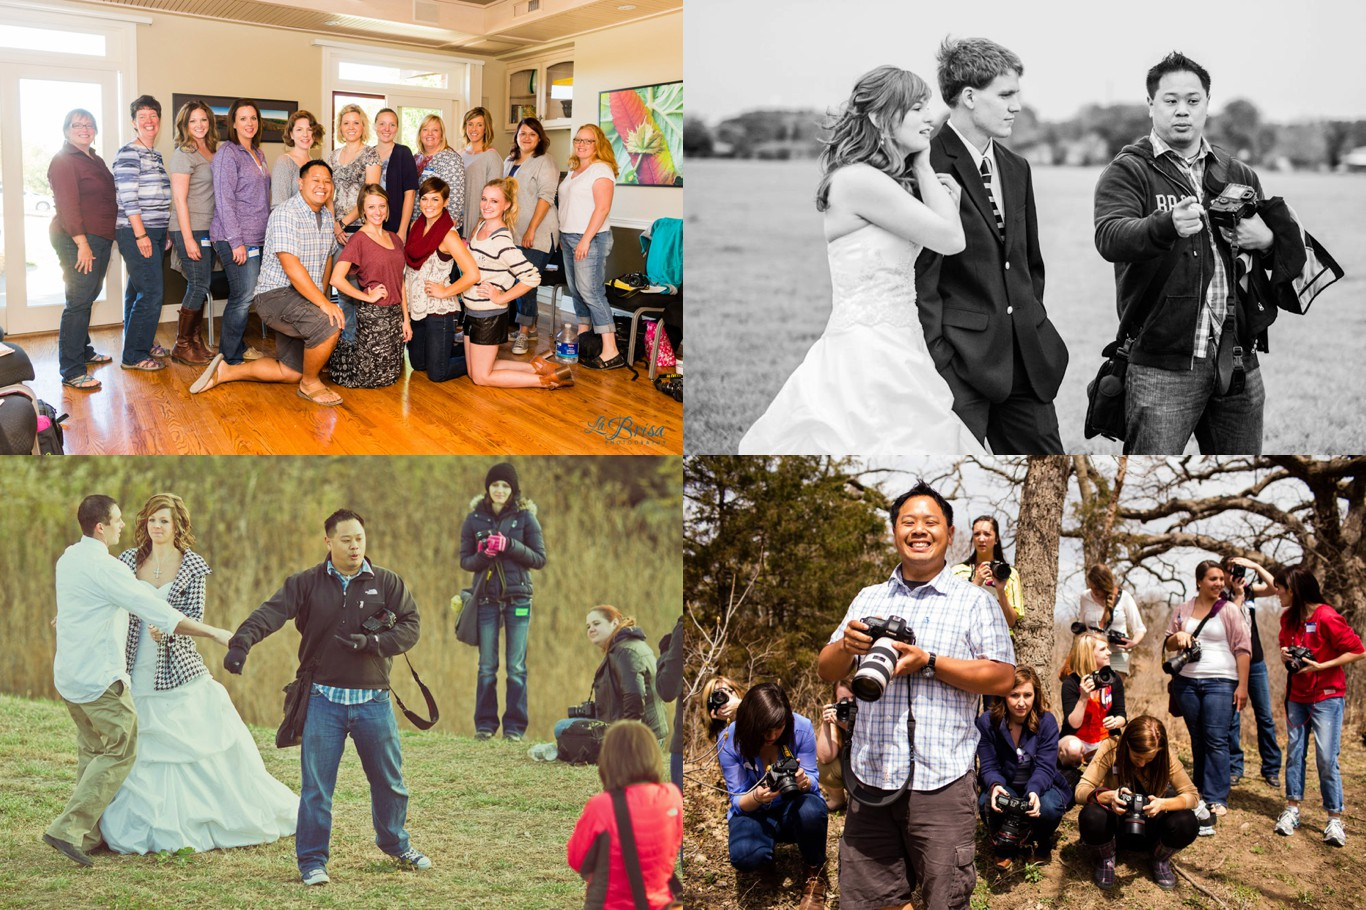 Arlington TX Portrait Photographer Top Ten Reasons I am Thankful for Photography Chris Hsieh